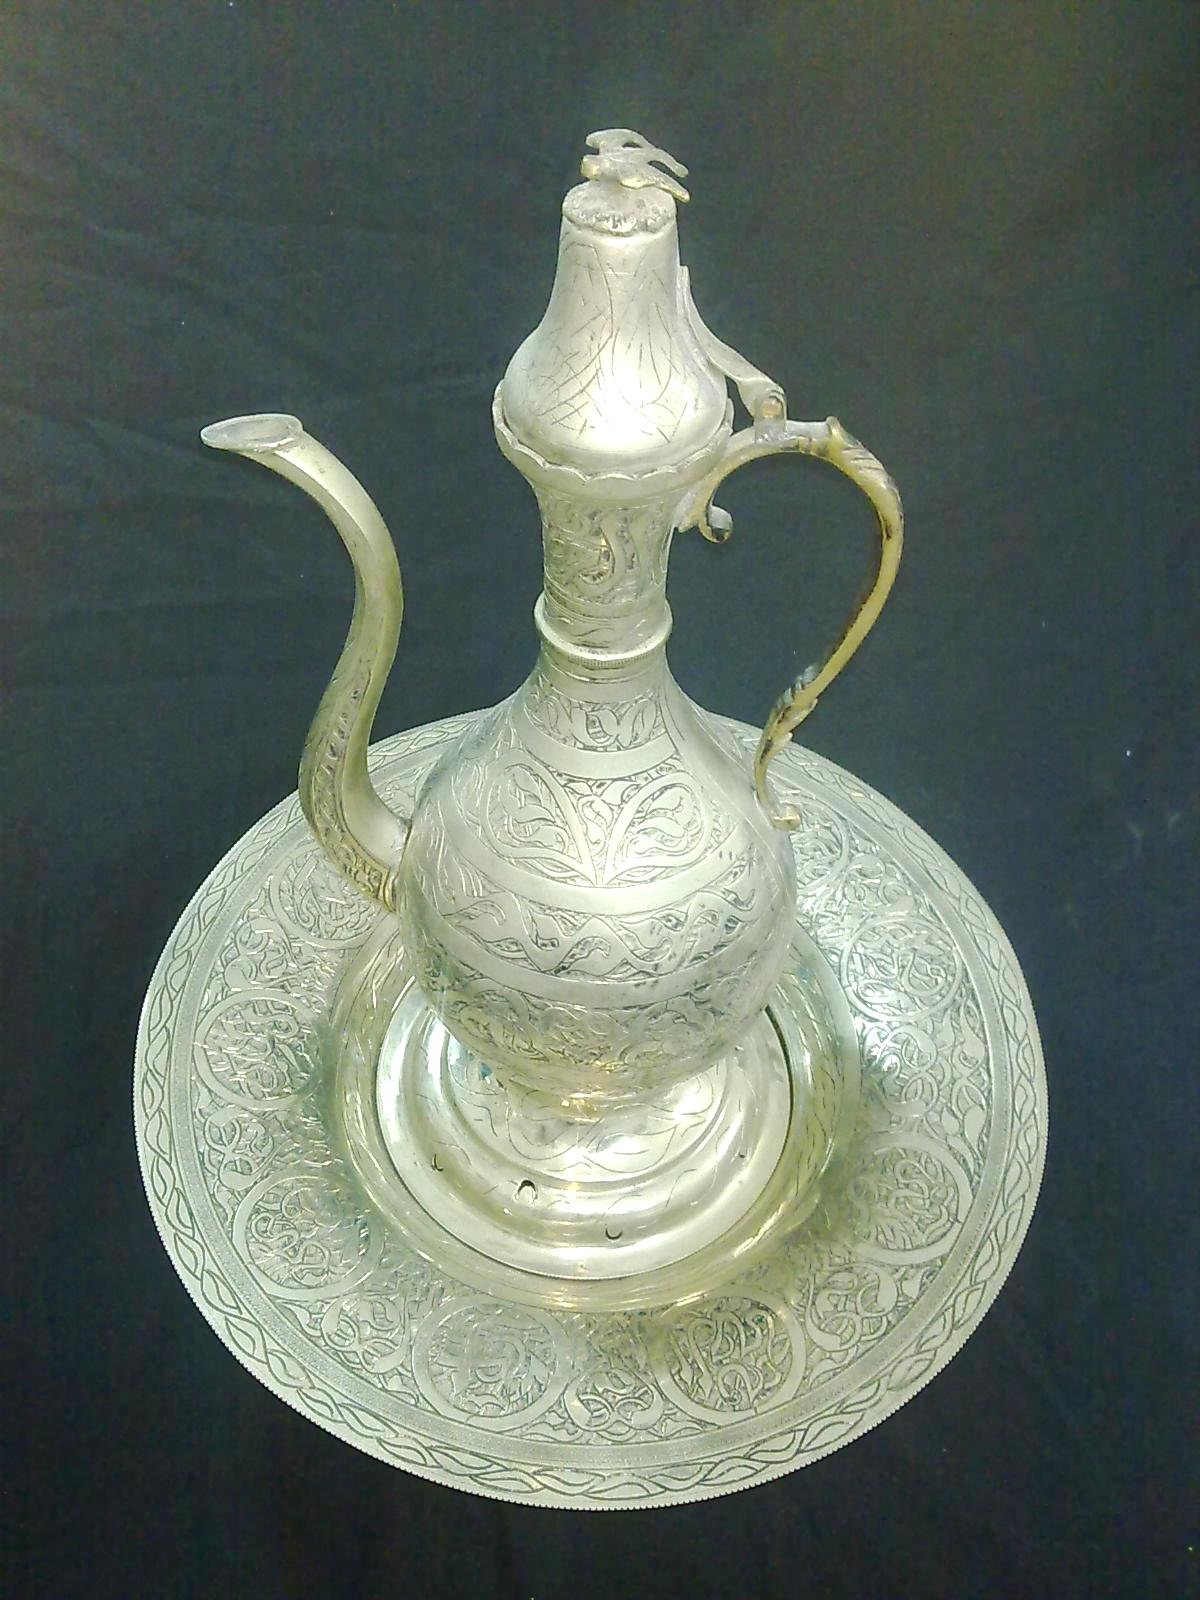 ANT17 Antique/Vintage Pewter Turkish/Ottoman Pitcher With Original Tray by Generic